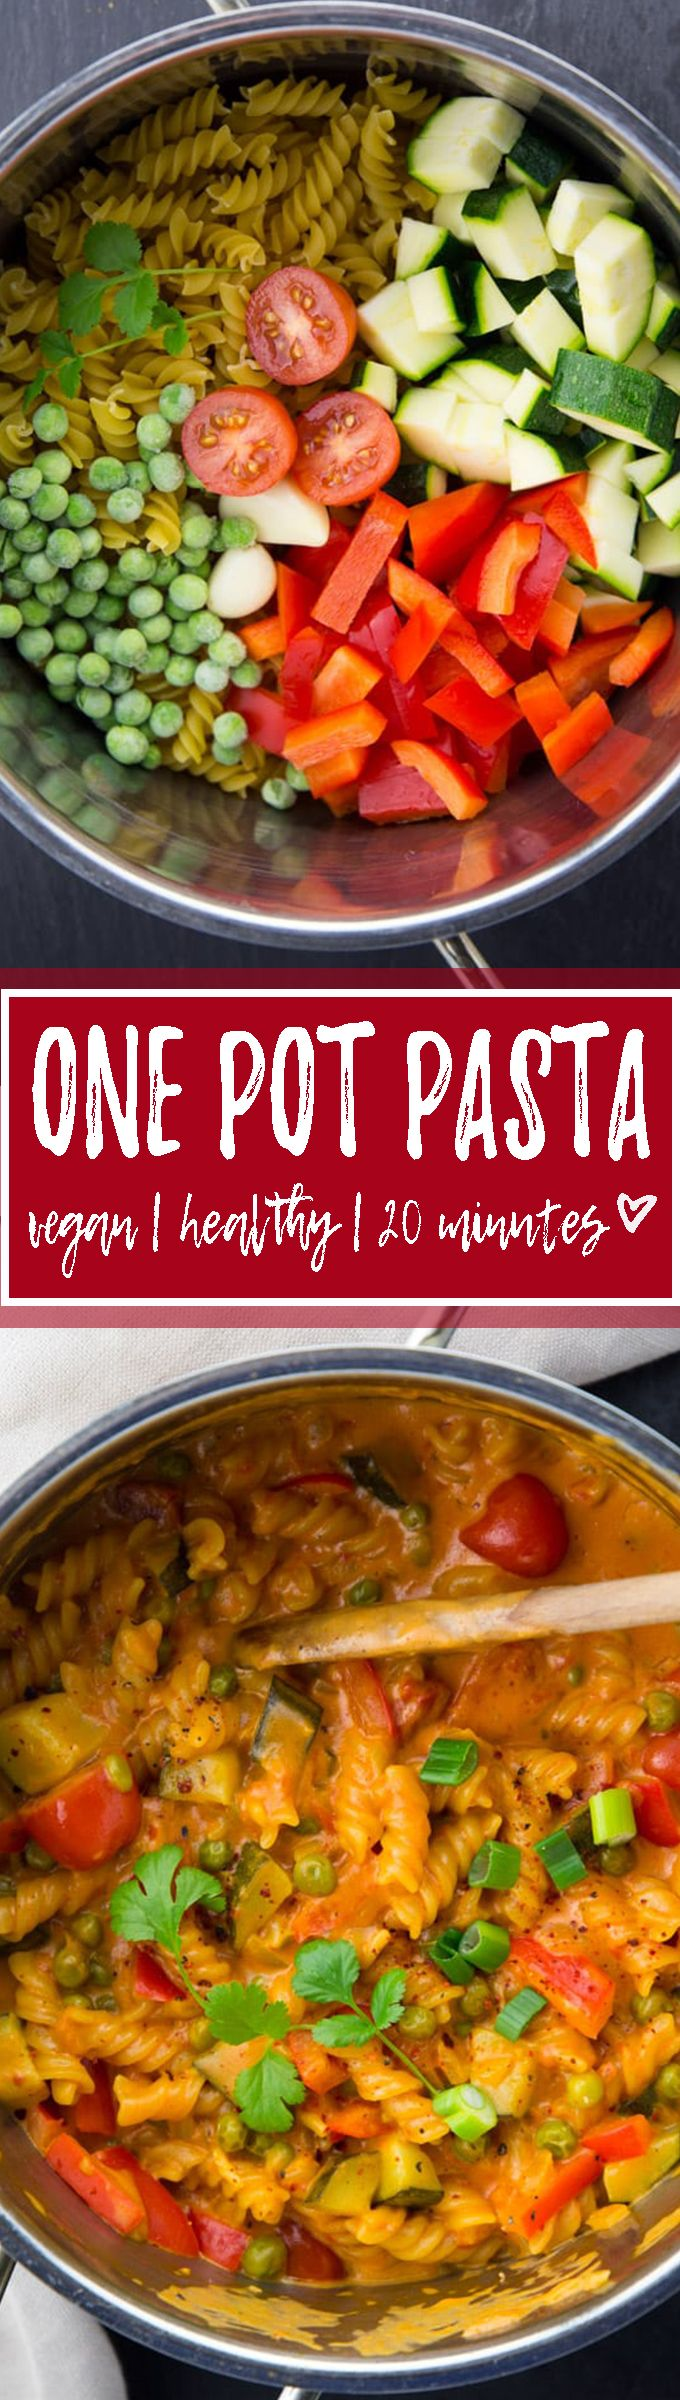 This Asian style vegan one pot pasta with coconut milk and red curry paste is my new favorite meal for weeknight dinners. Easy, healthy, and so incredibly delicious and creamy! <3 | veganheaven.org (Healthy Recipes Easy)